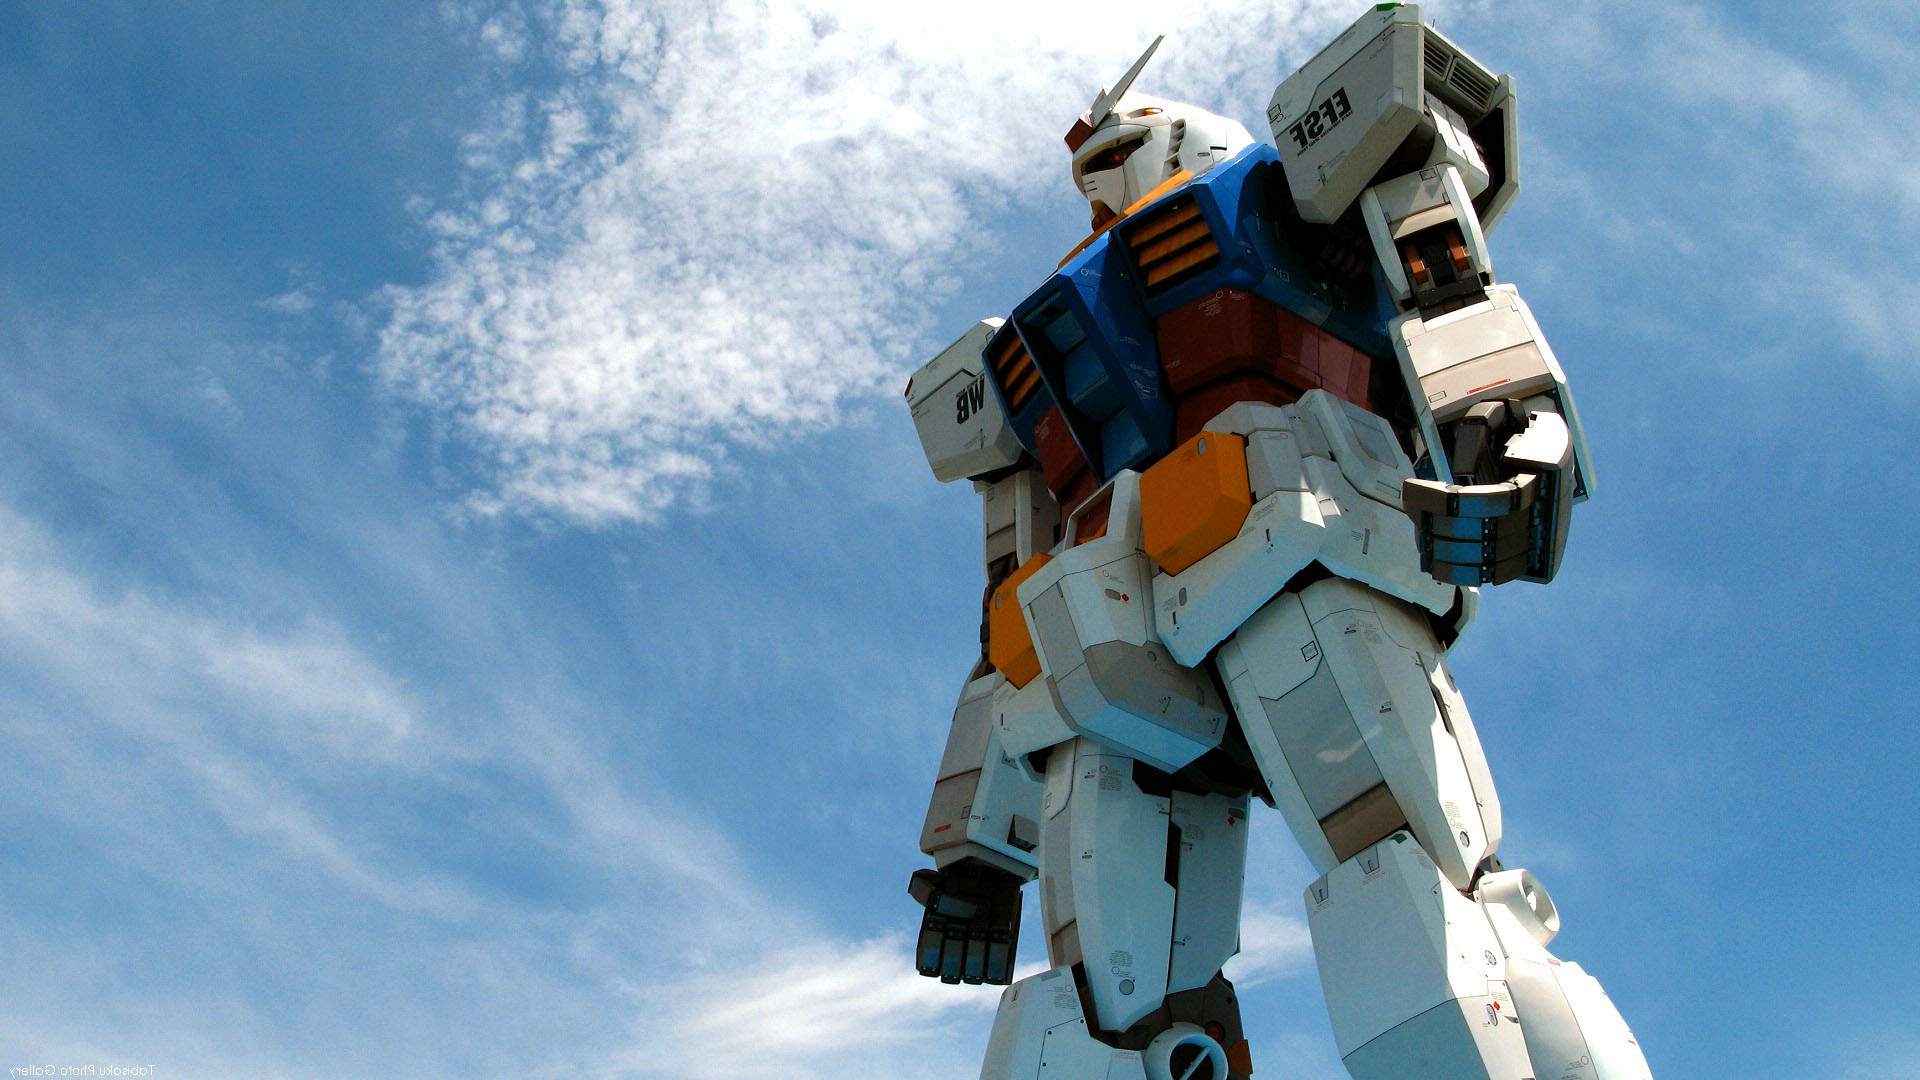 Gundam Computer Wallpapers Desktop Backgrounds 1920x1080 ID 1920x1080